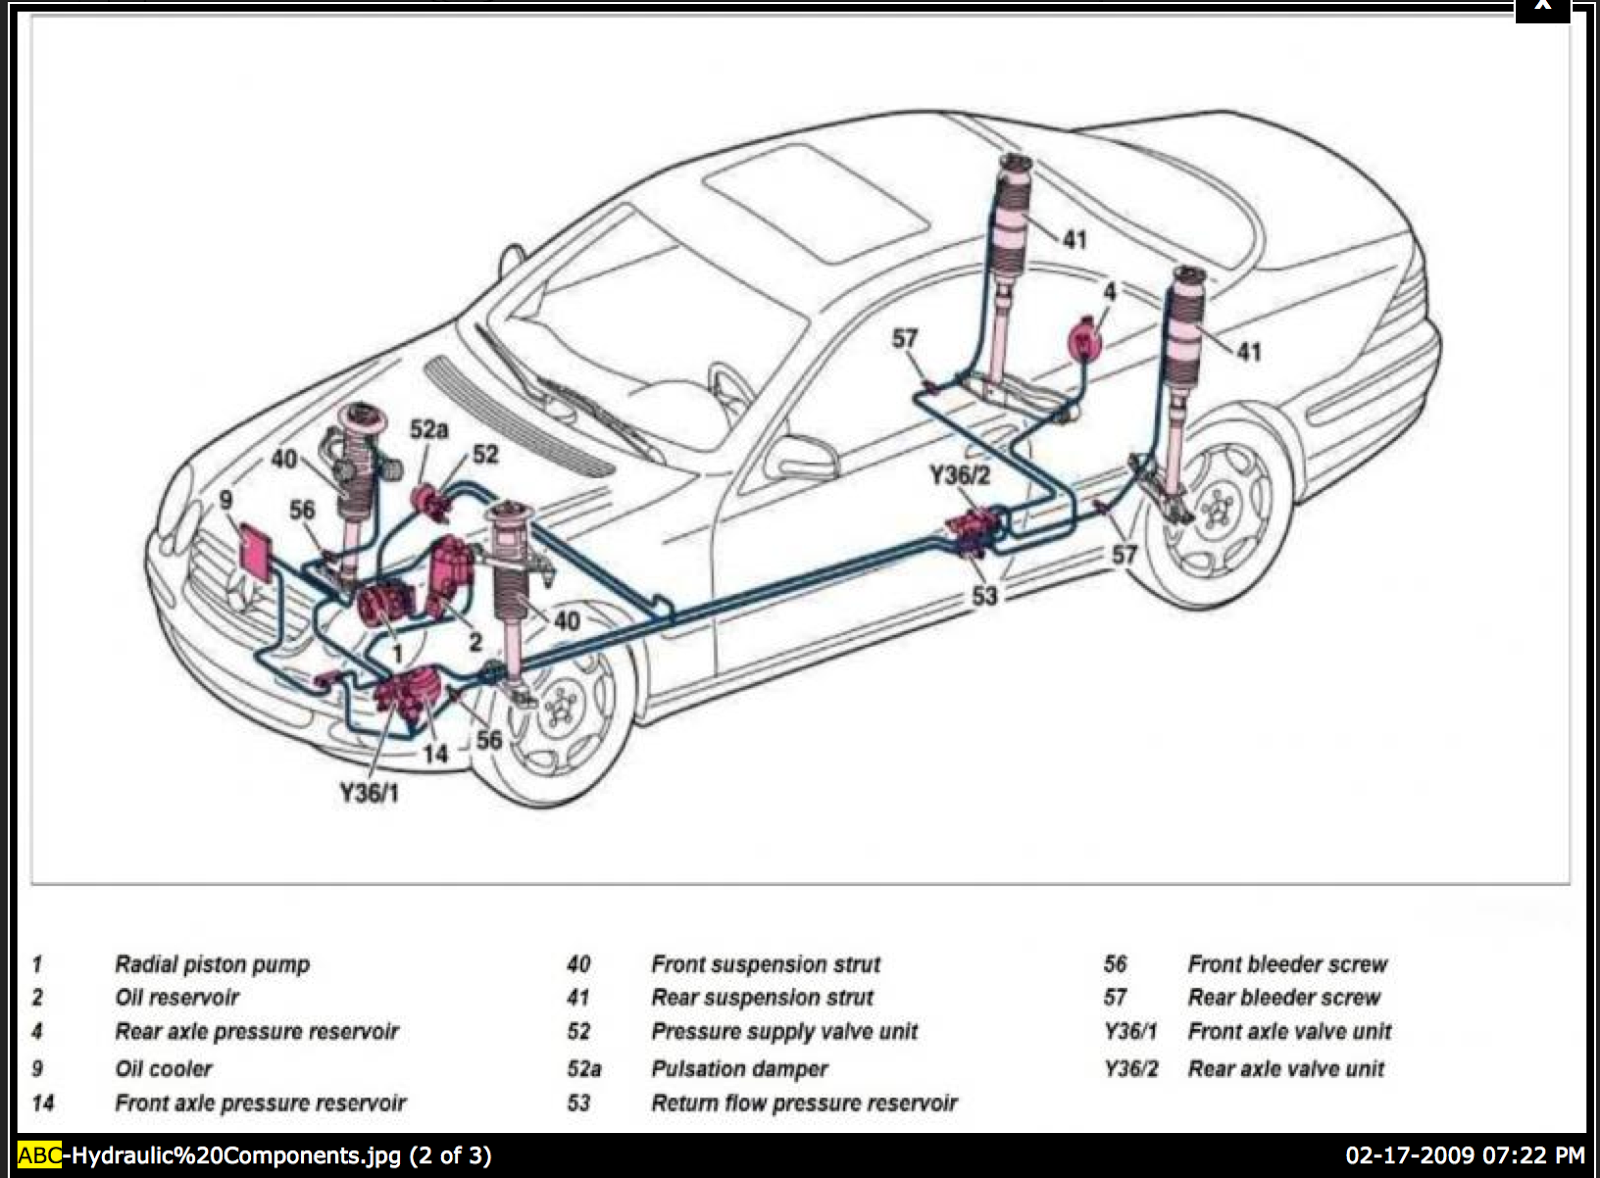 mercedes cl55 fuse diagram with Overview Abc System Isthe Key Part Of on Fan Relay Wiring Diagram besides Overview Abc System Isthe Key Part Of additionally